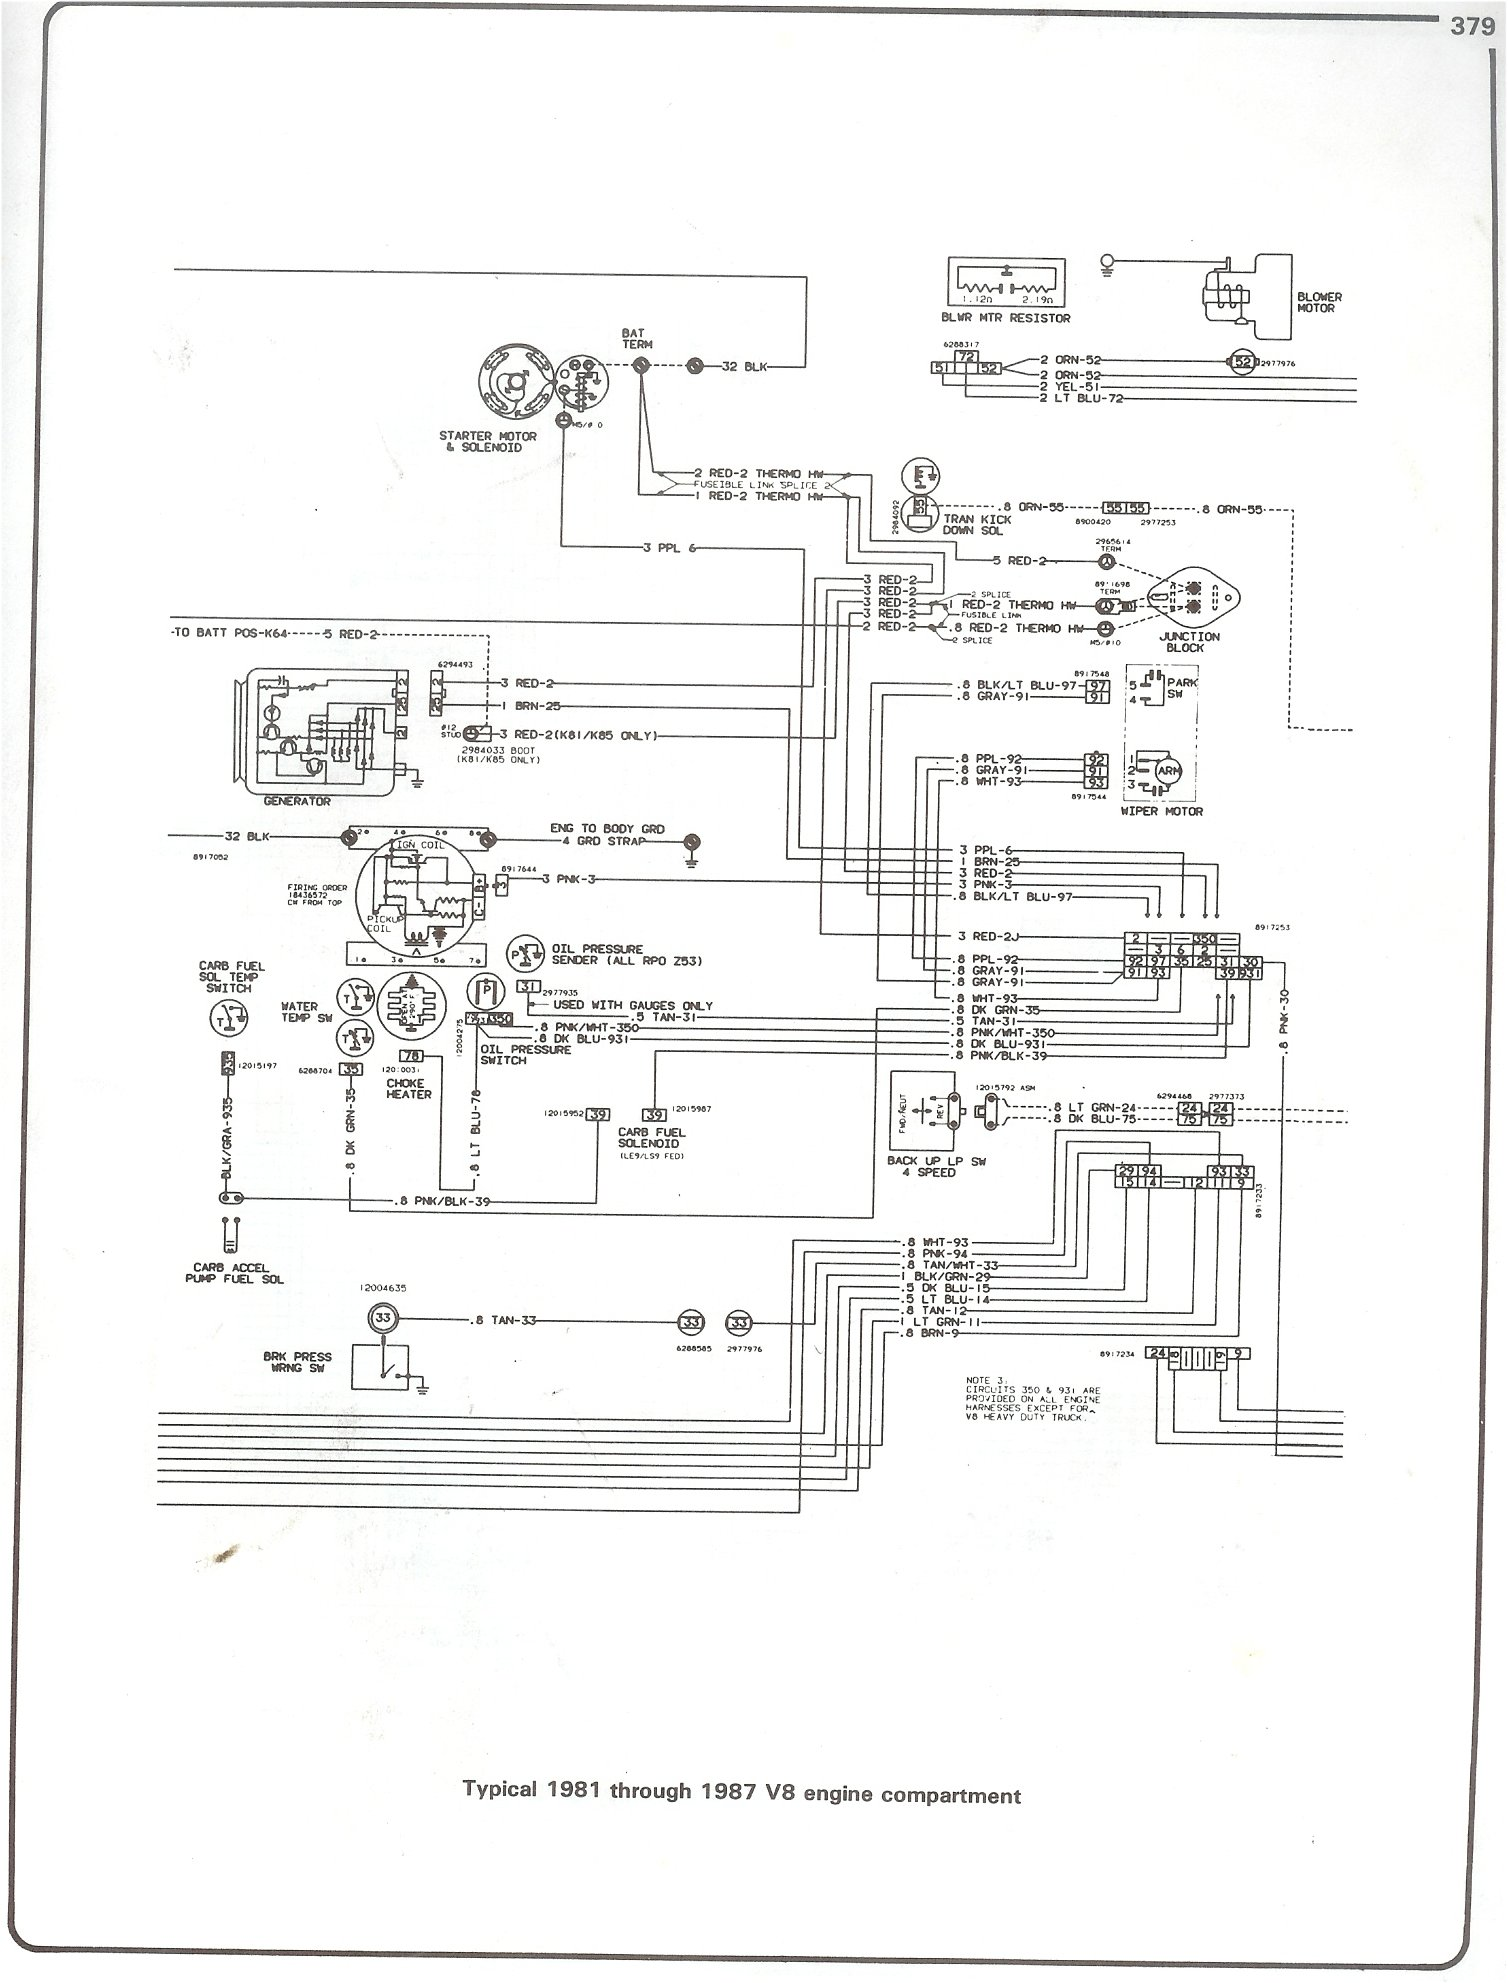 81 87_V8_engine complete 73 87 wiring diagrams 1985 chevy c10 fuse box diagram at cita.asia